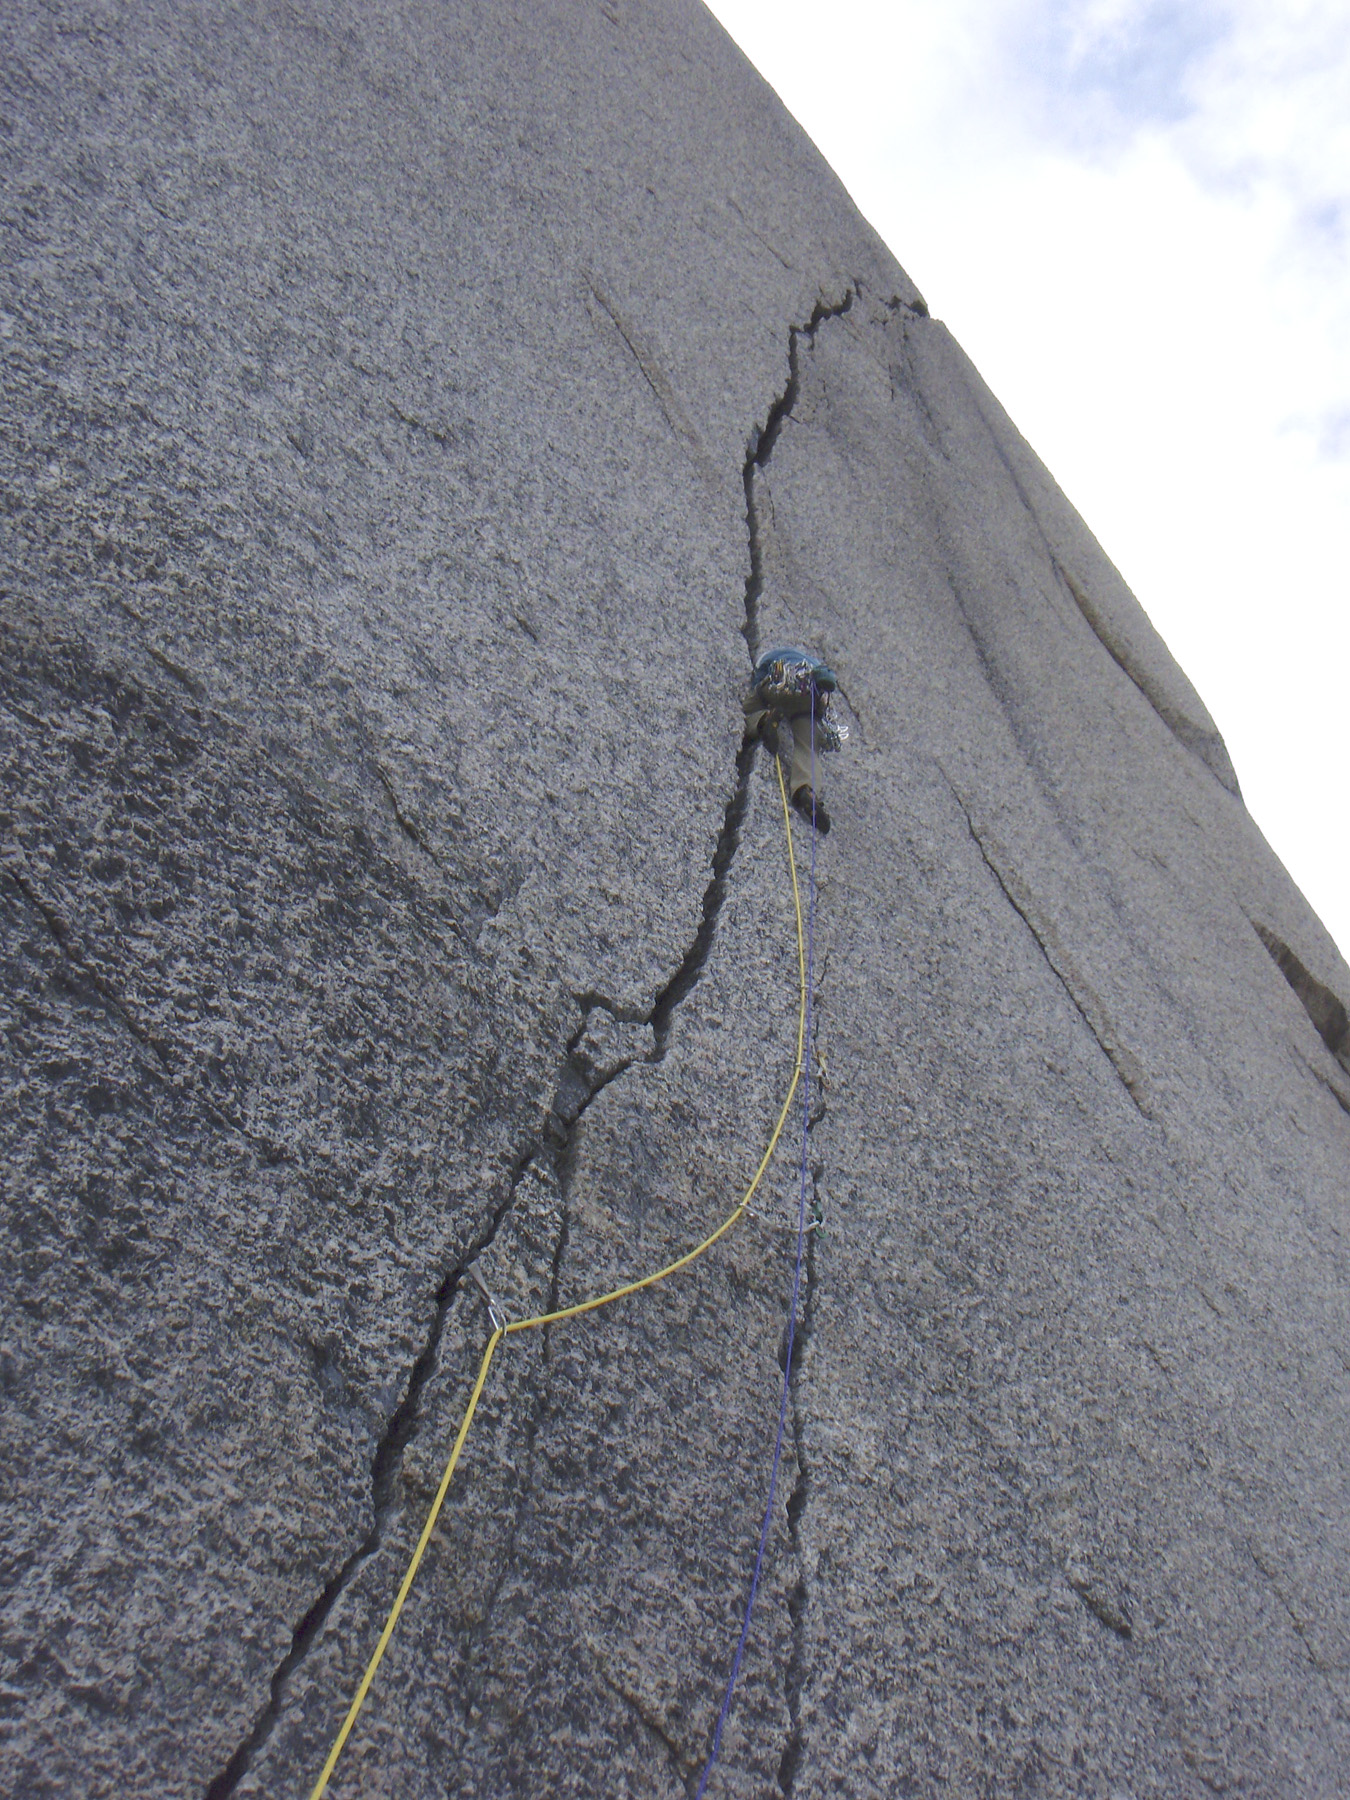 No problem with route finding on this pitch. Mattias Sellden making an unsuccessful attempt on a new route up the north face of Hermelnbjerg.